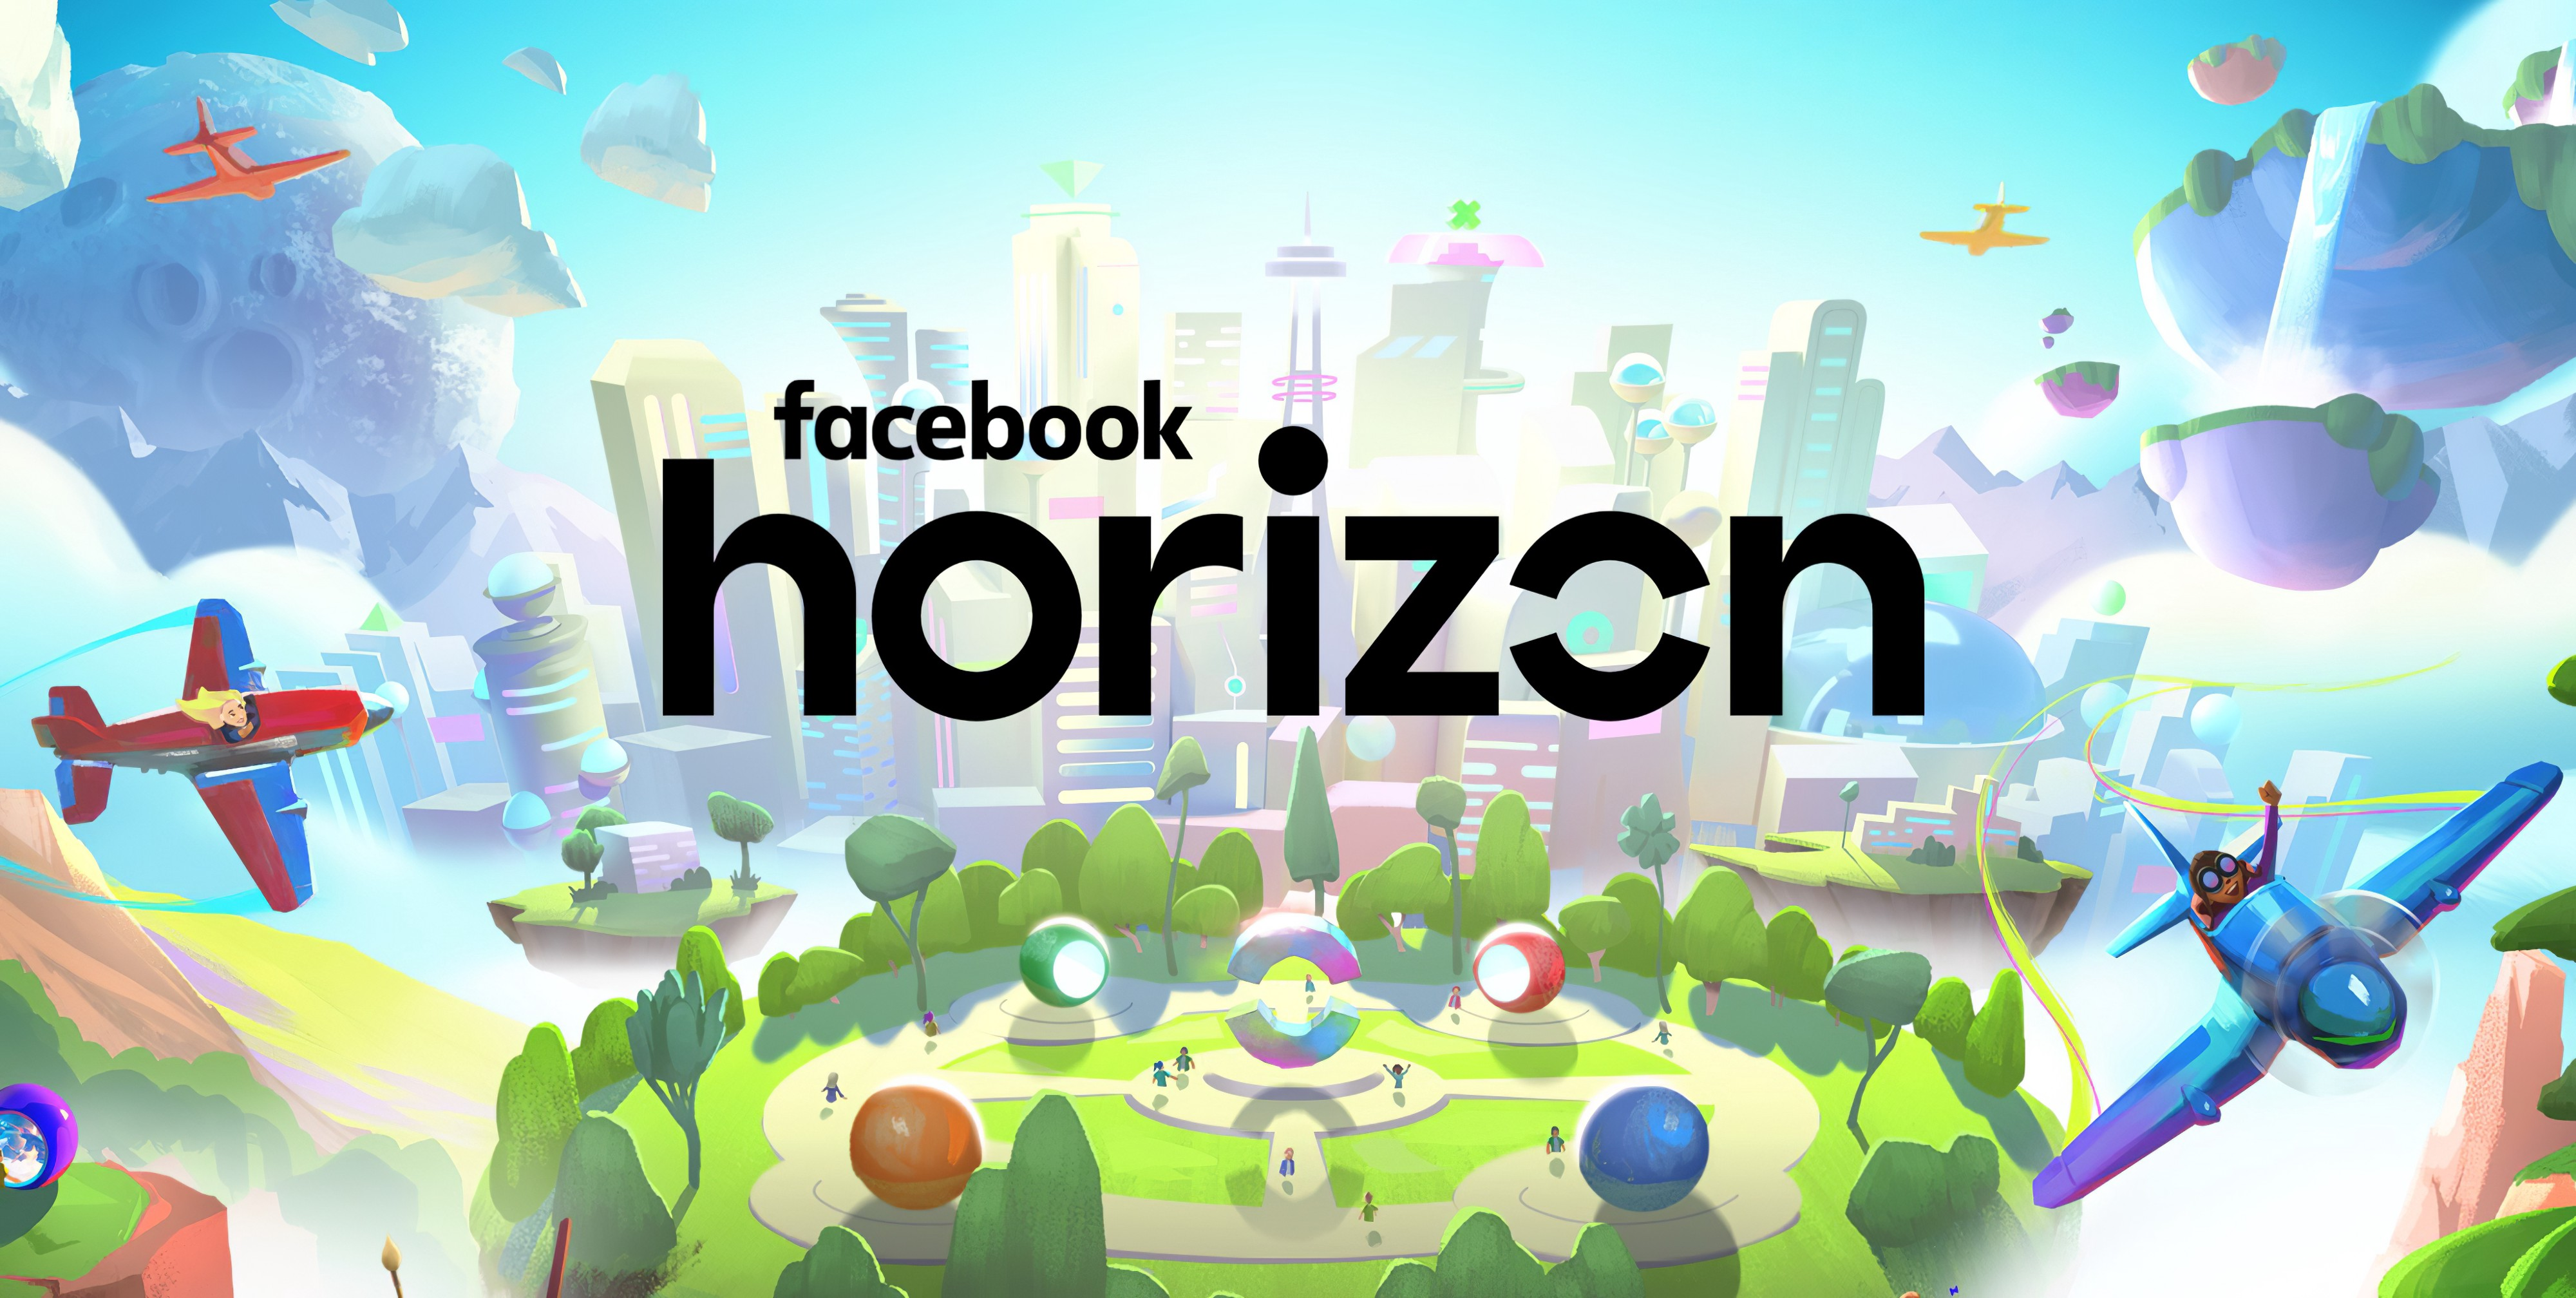 Facebook is Building the Metaverse, Meet Horizon | by Riccardo Giorato |  The Startup | Medium